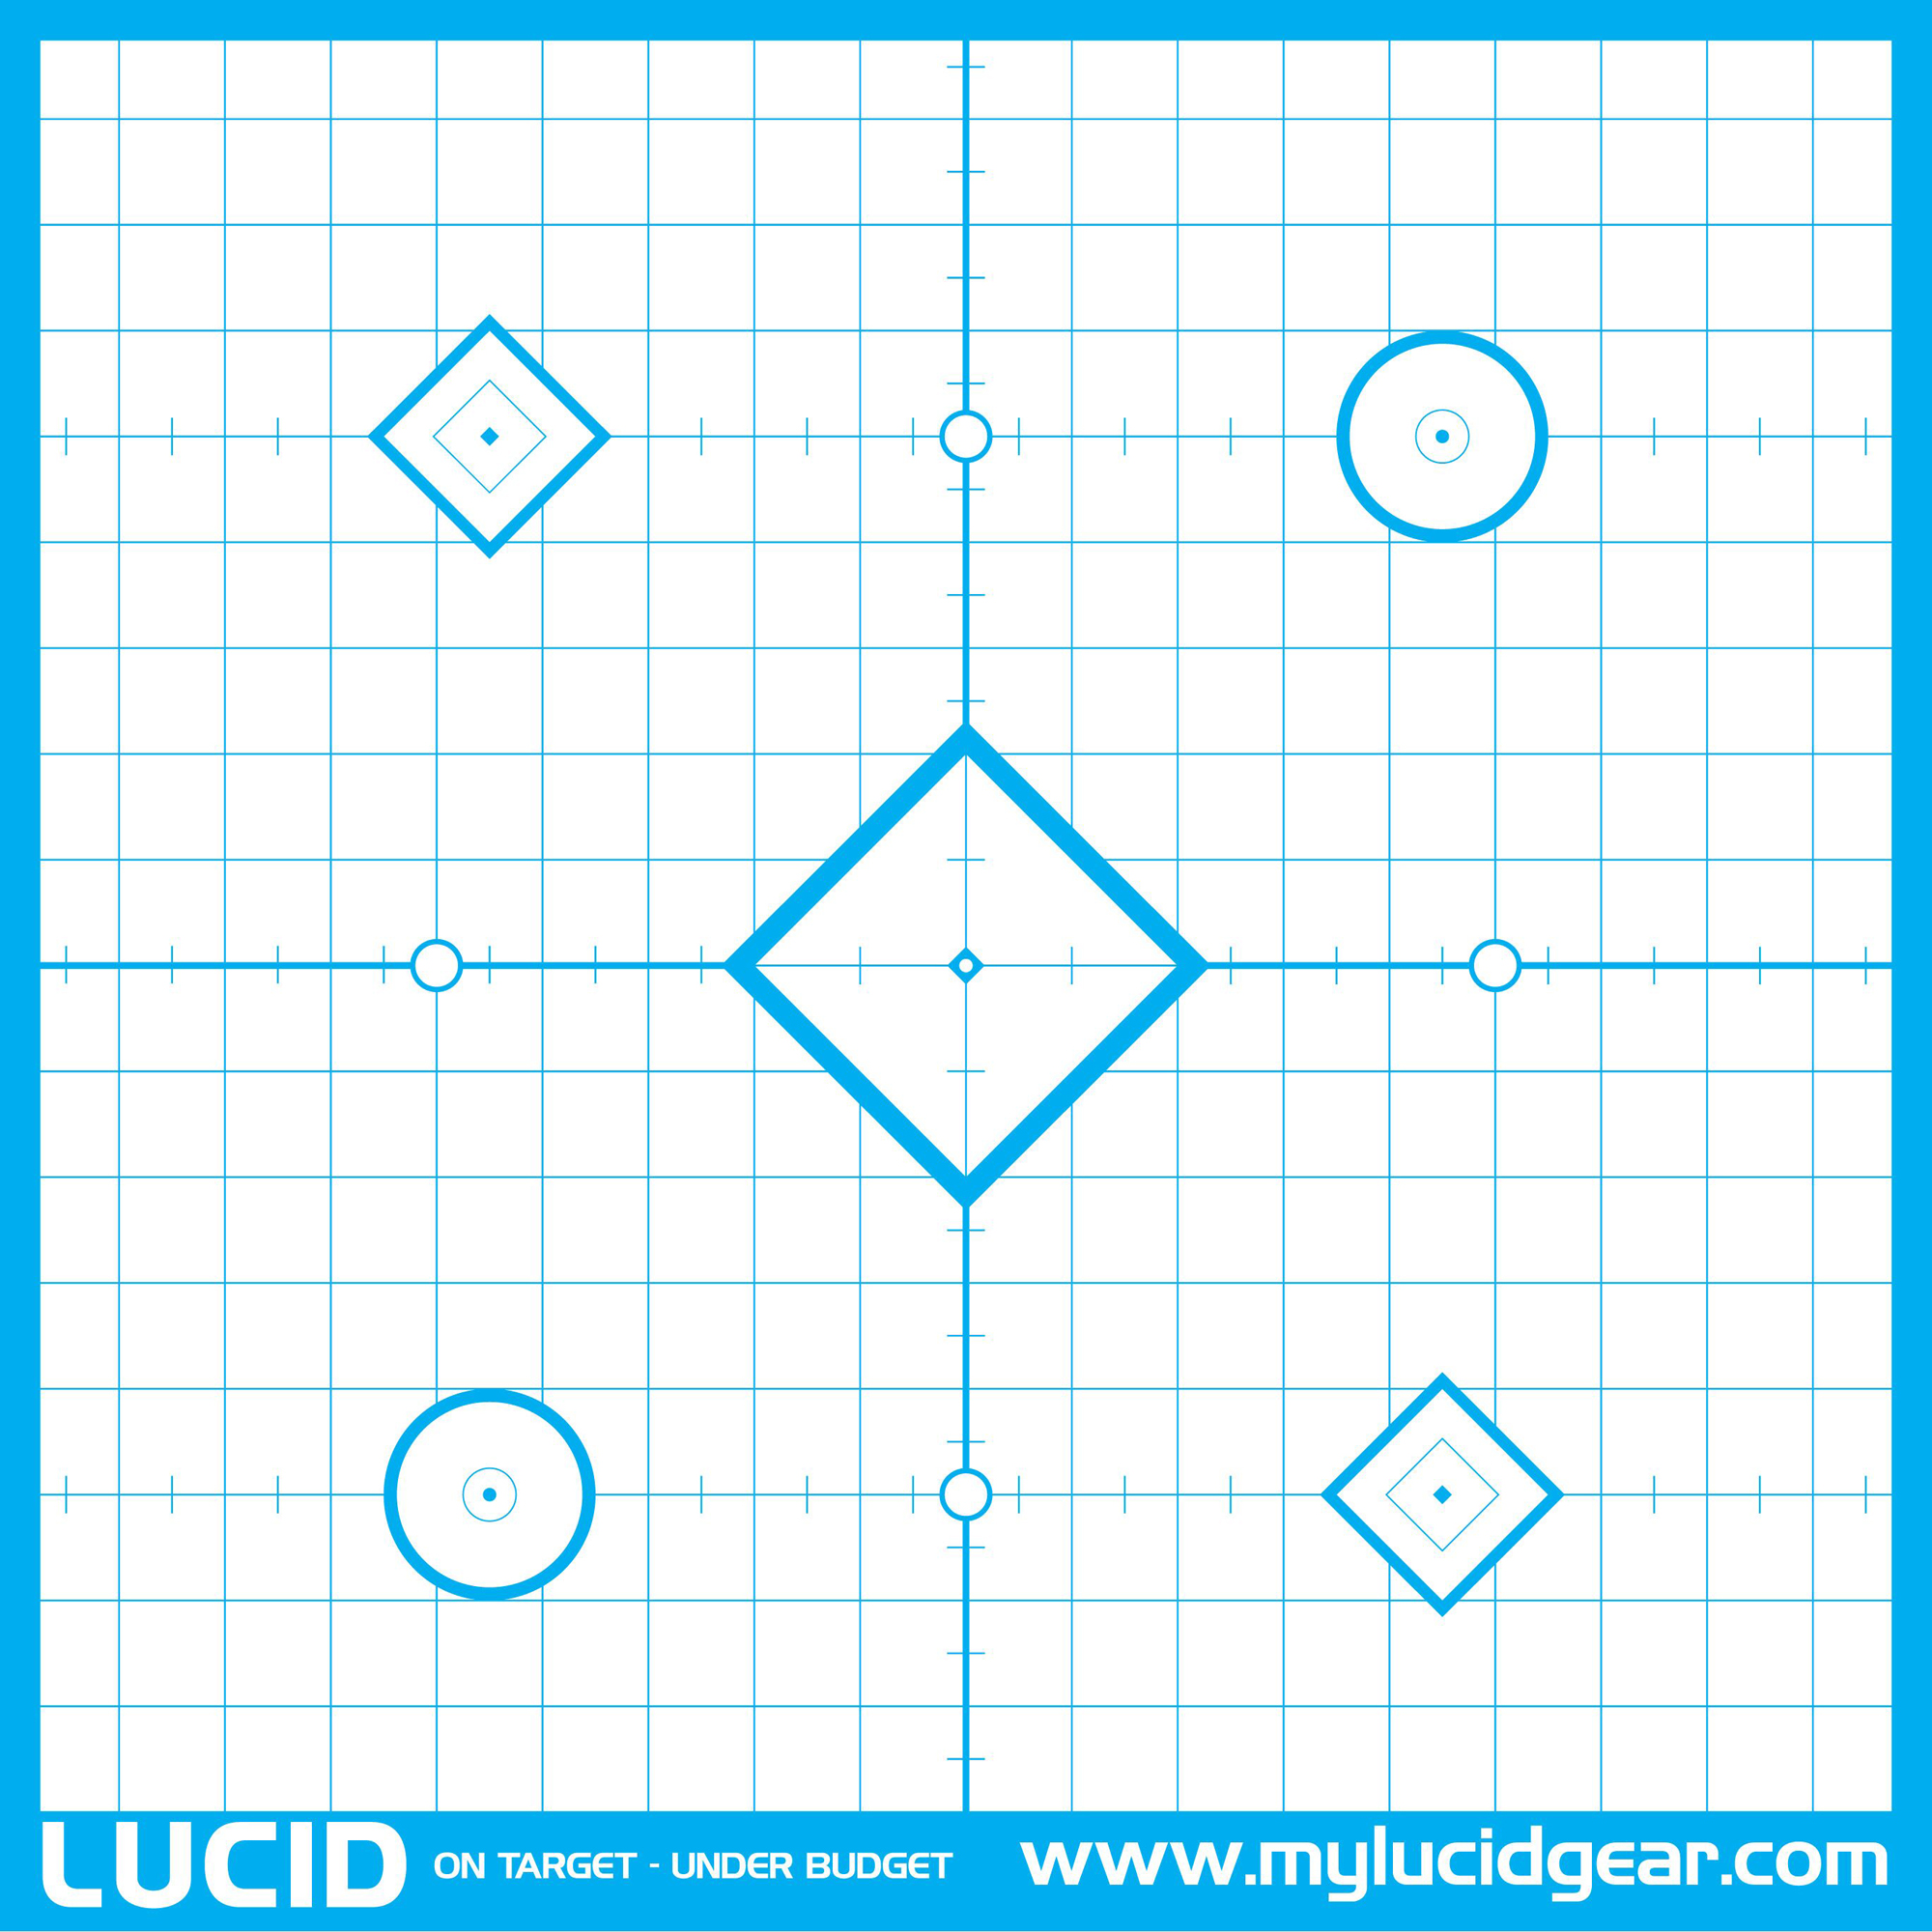 These targets are made with a high quality paper and an easy to see Cyan color. Nine aiming points and precise markings provide feedback so you will be on target in no time at all.